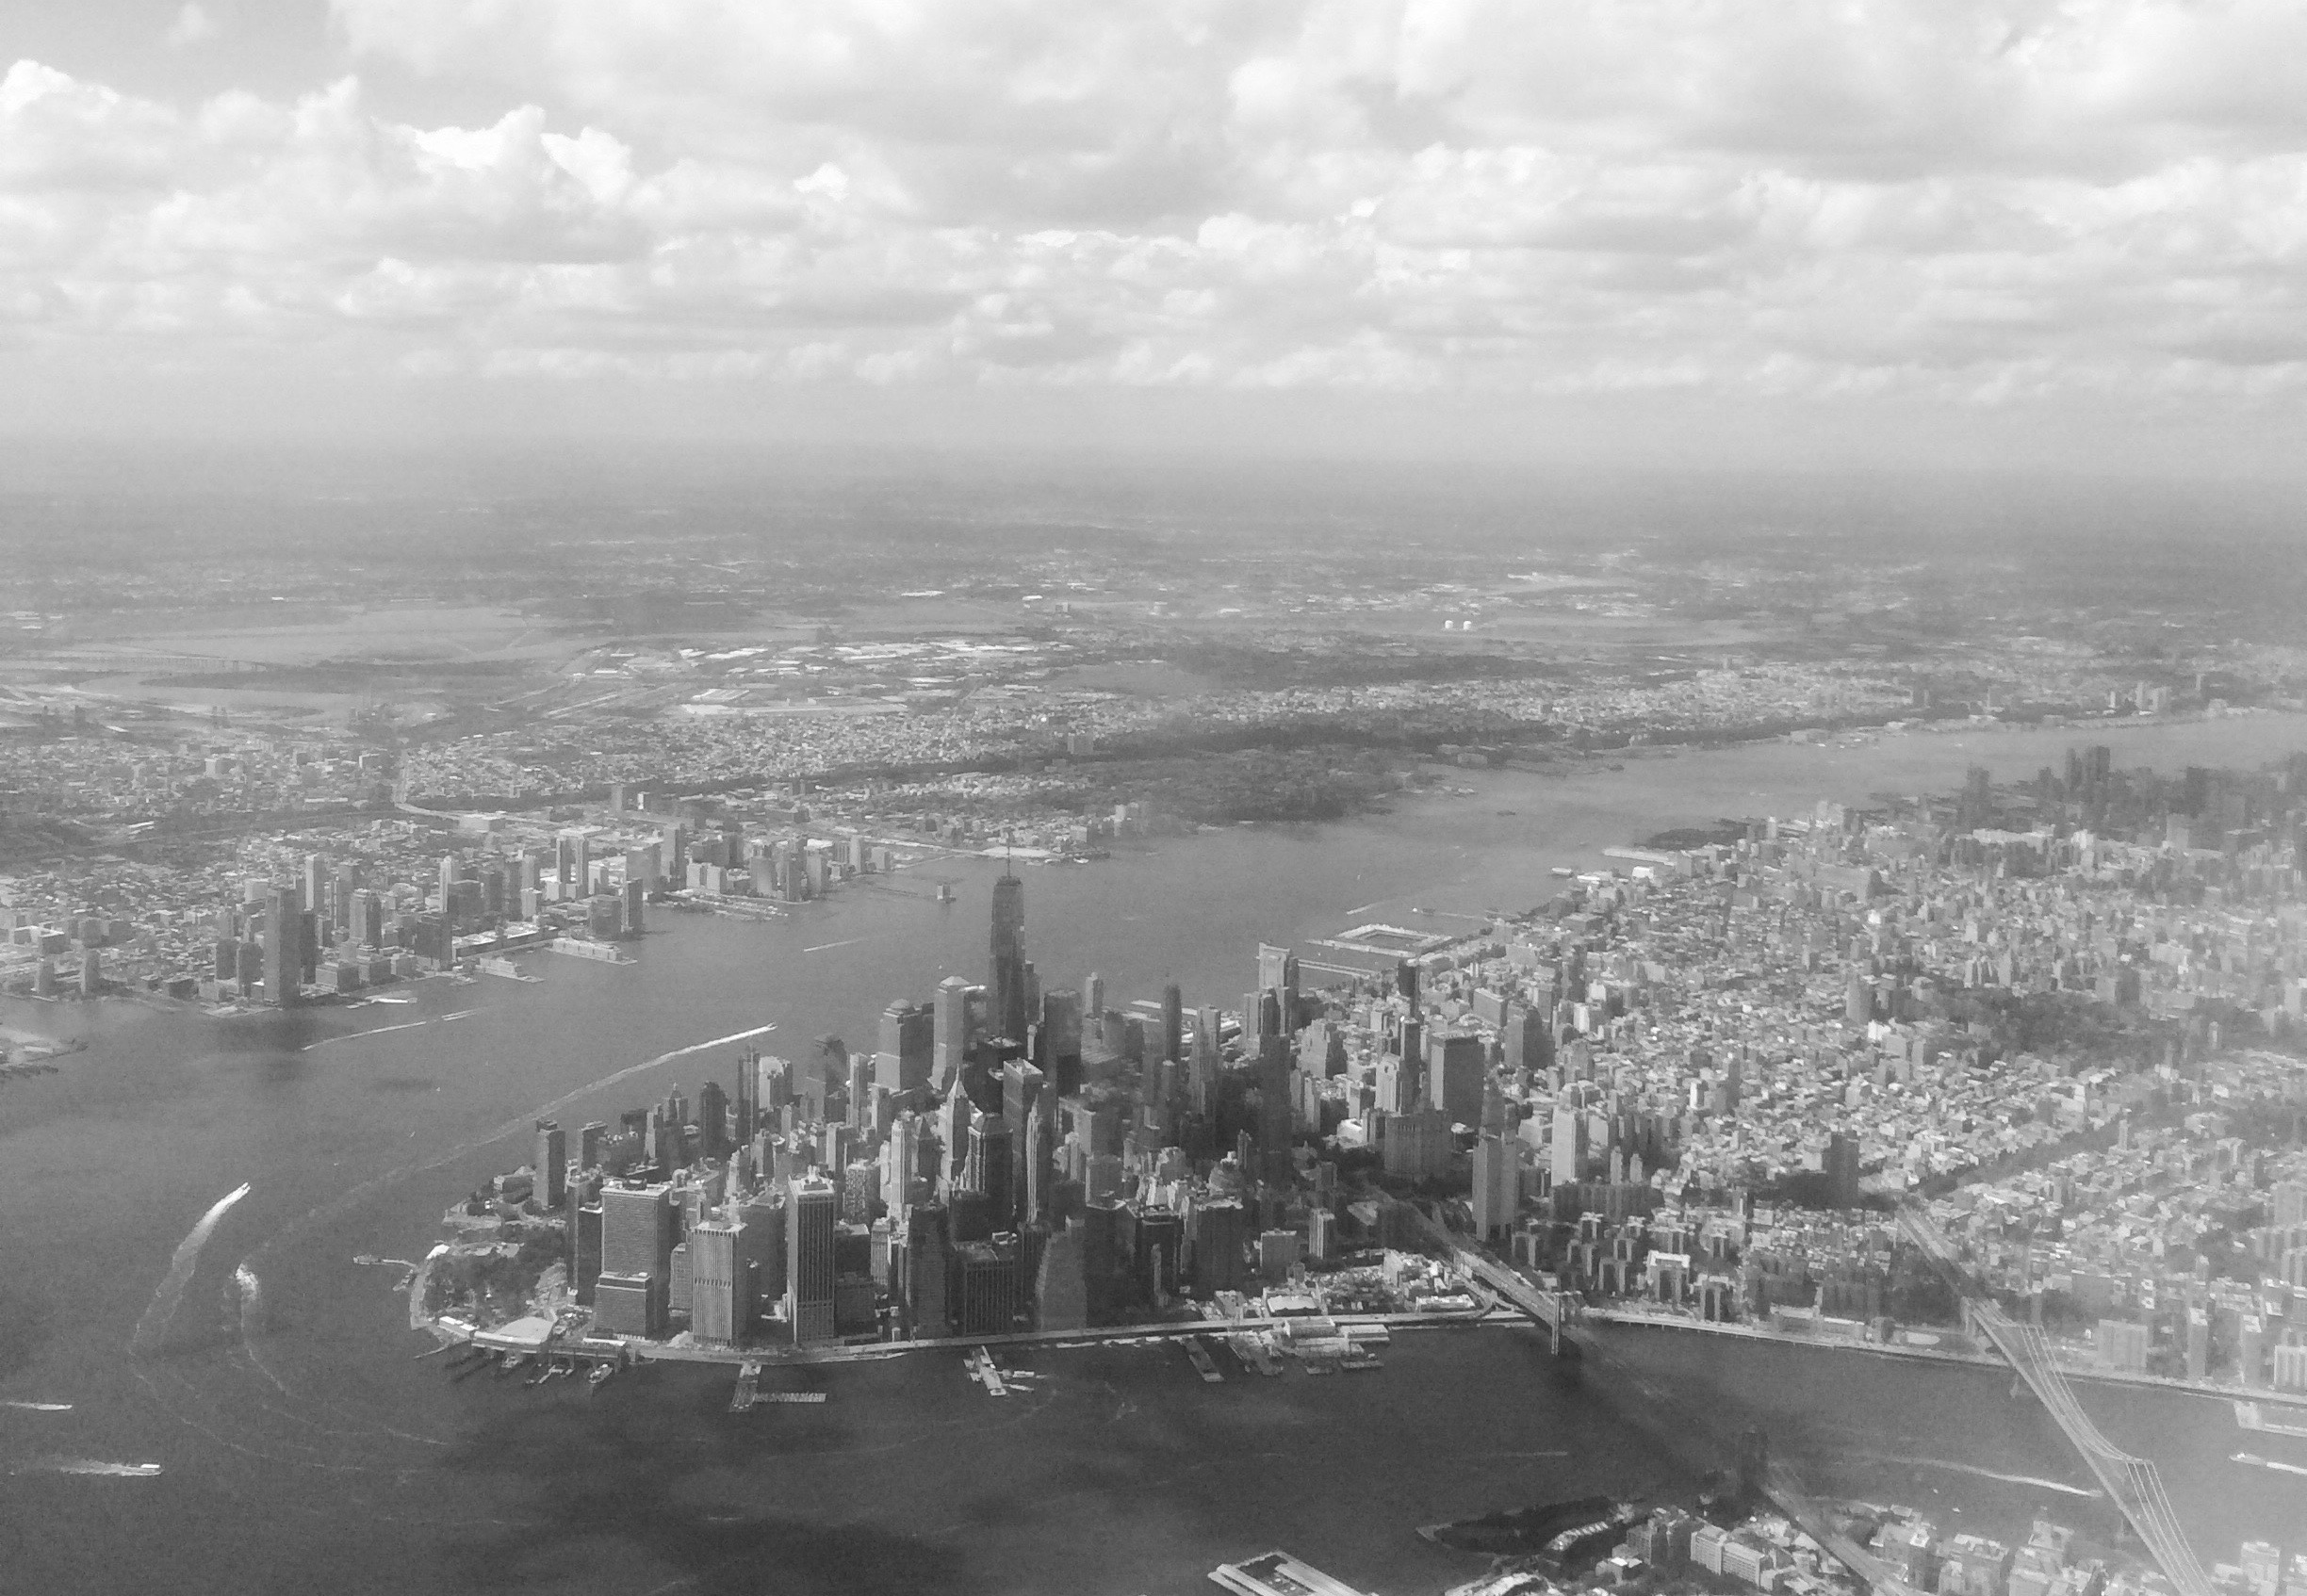 Flying into NYC last weekend, the approach to LaGuardia airport